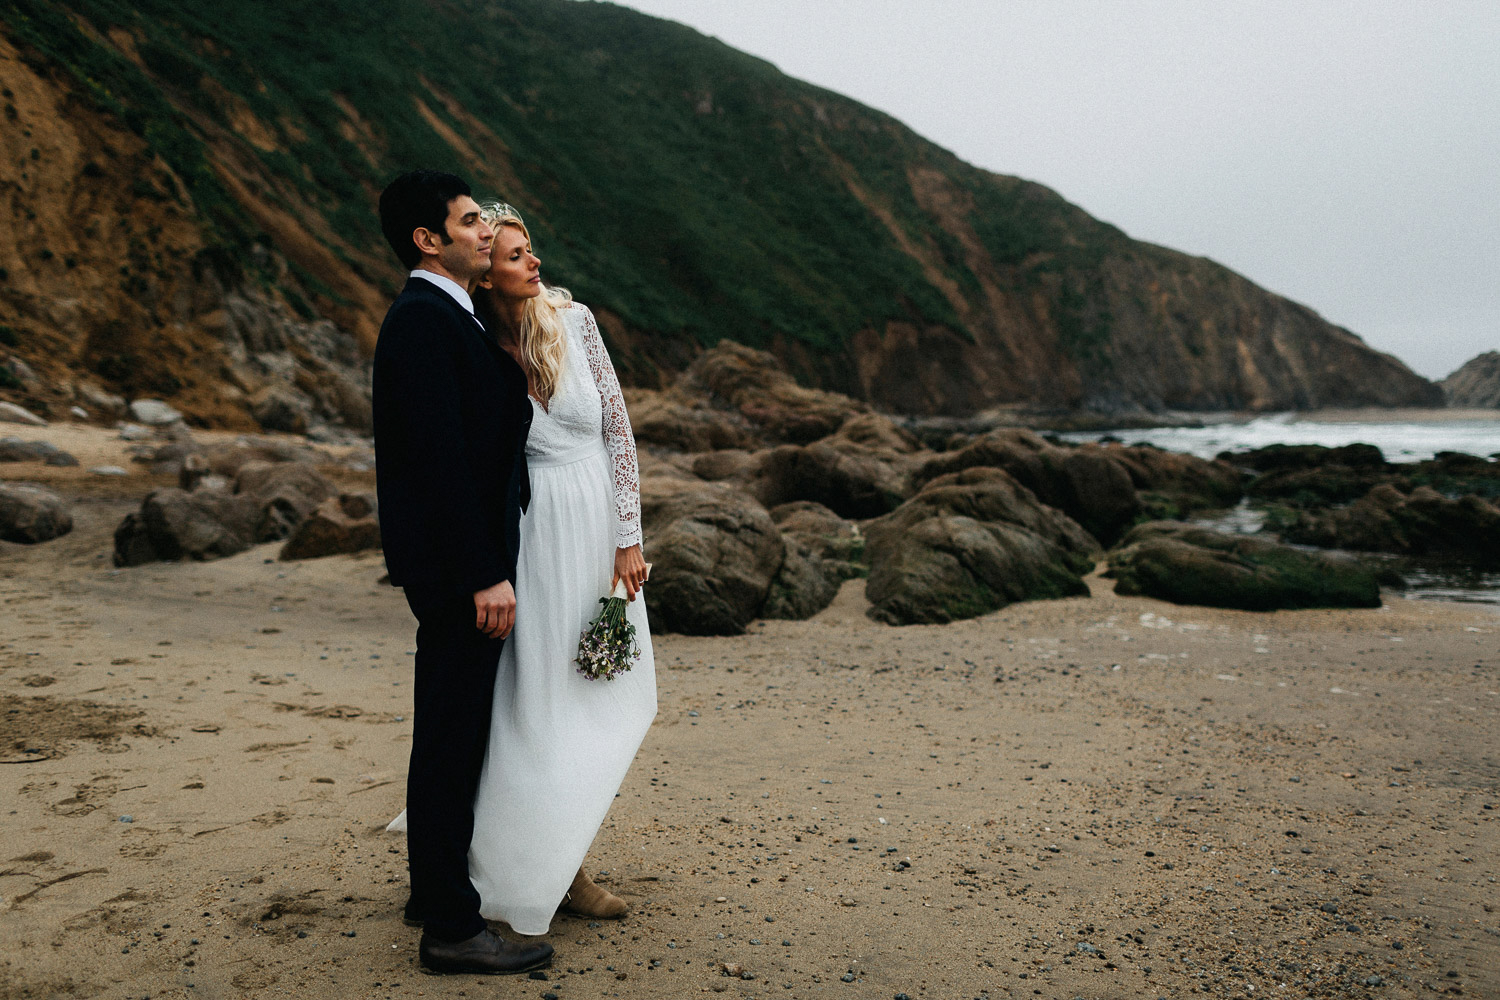 Image of bride and groom look forward together